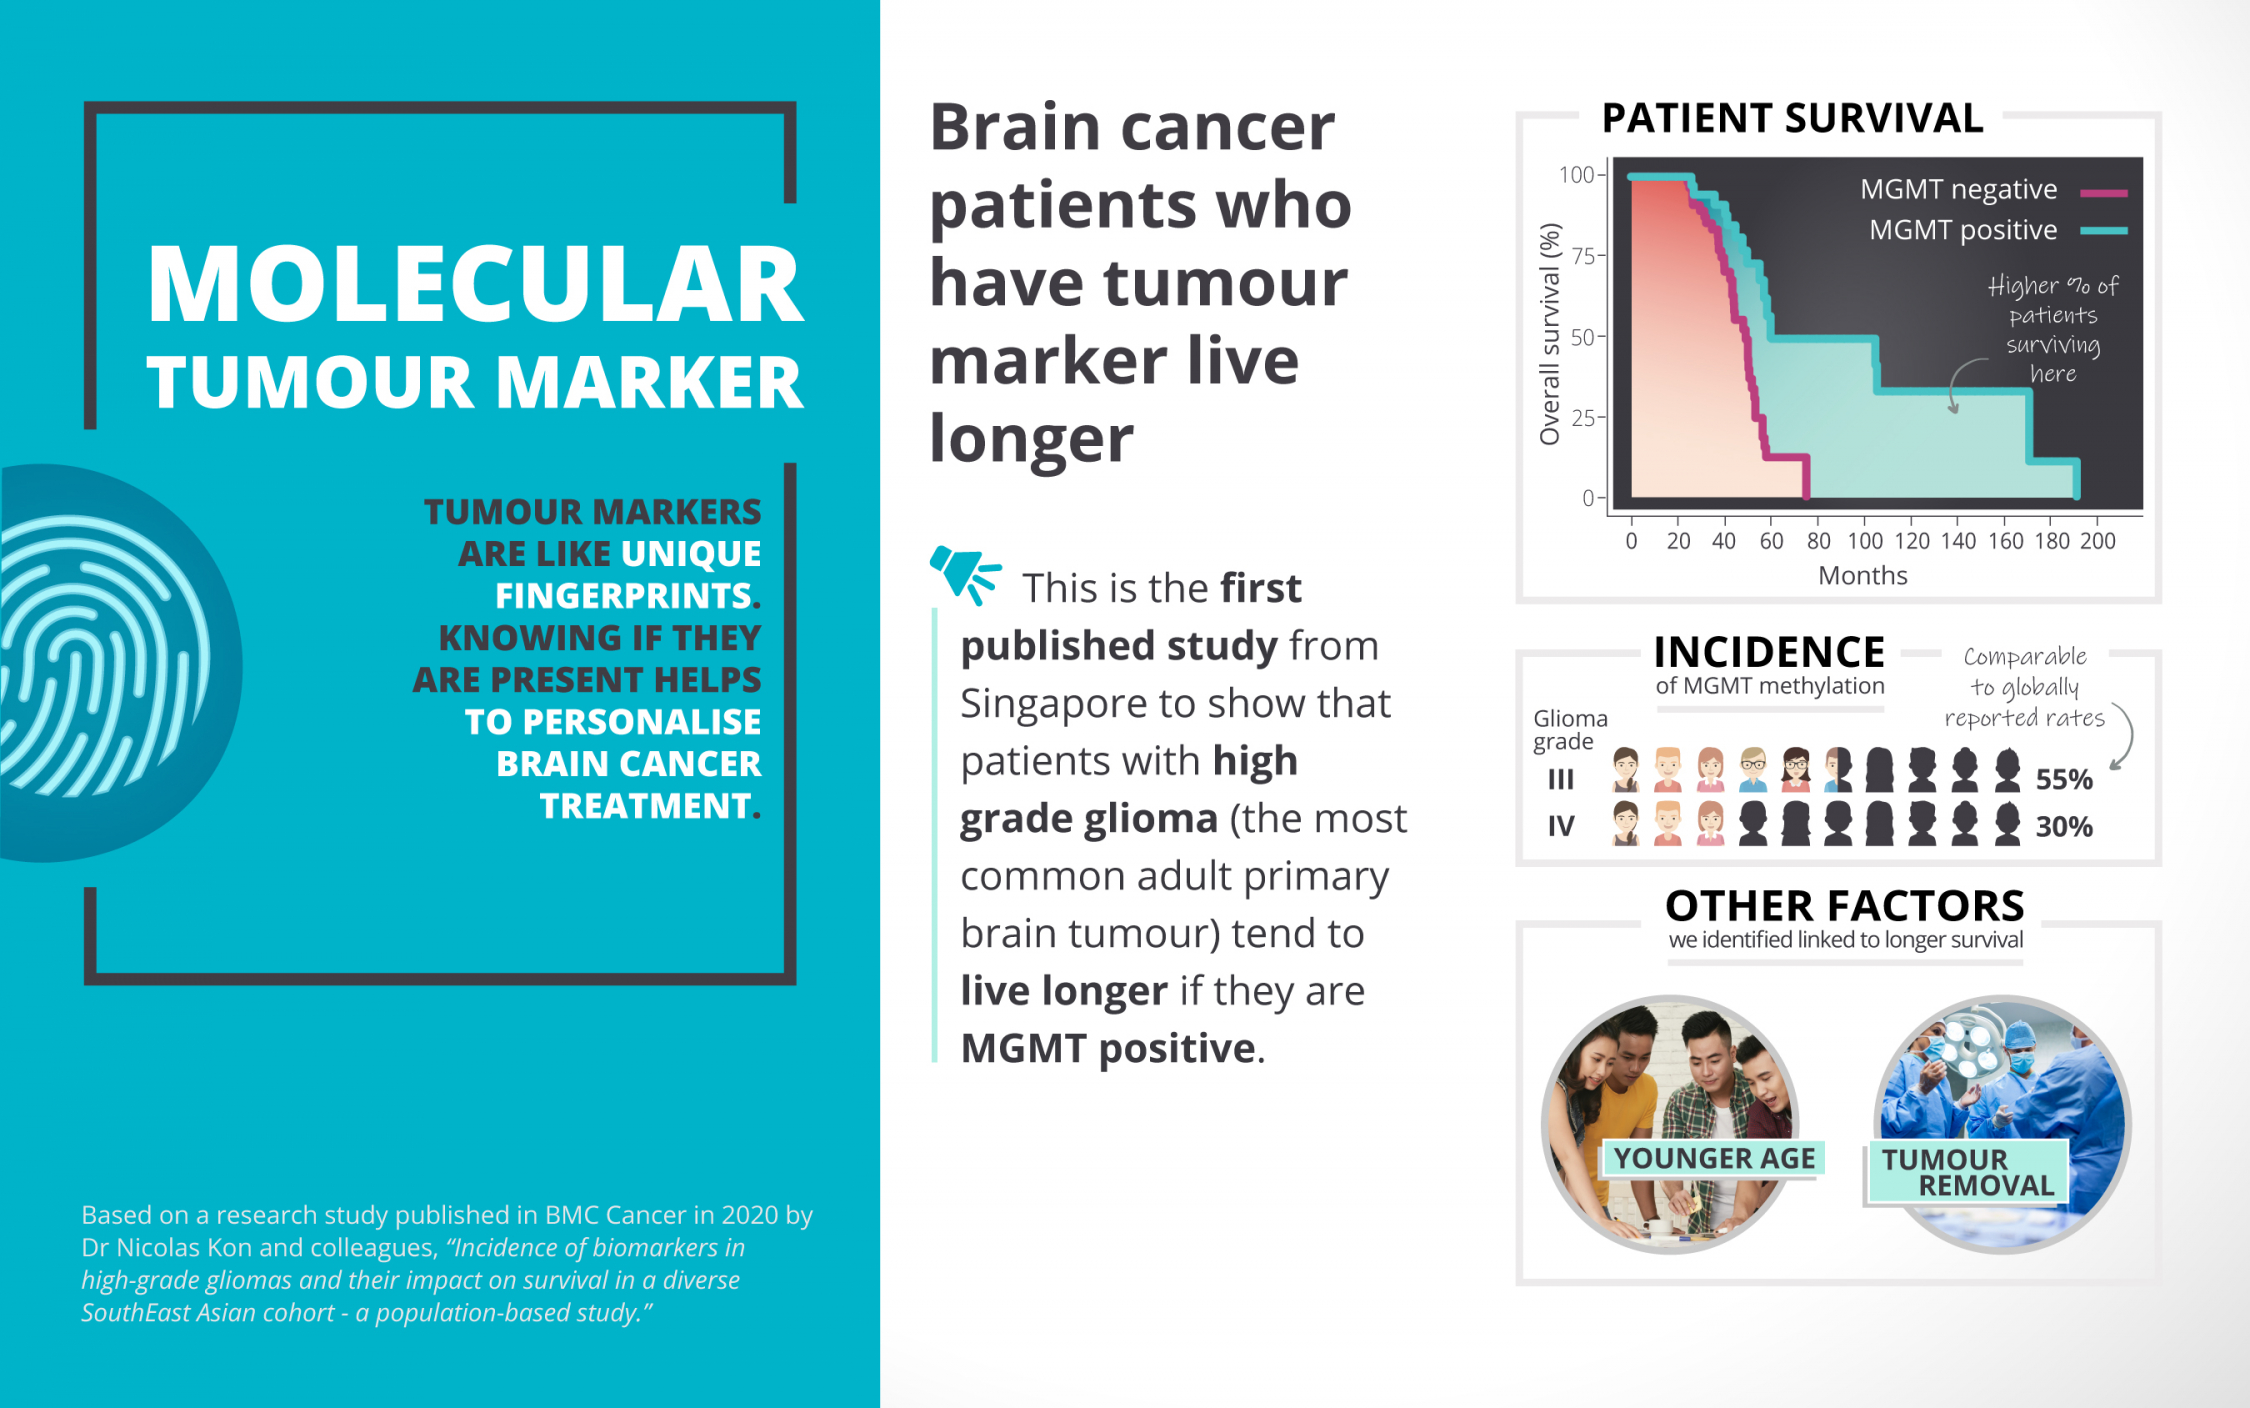 Infographic shows the effect on survival based on the presence of the brain tumour marker.